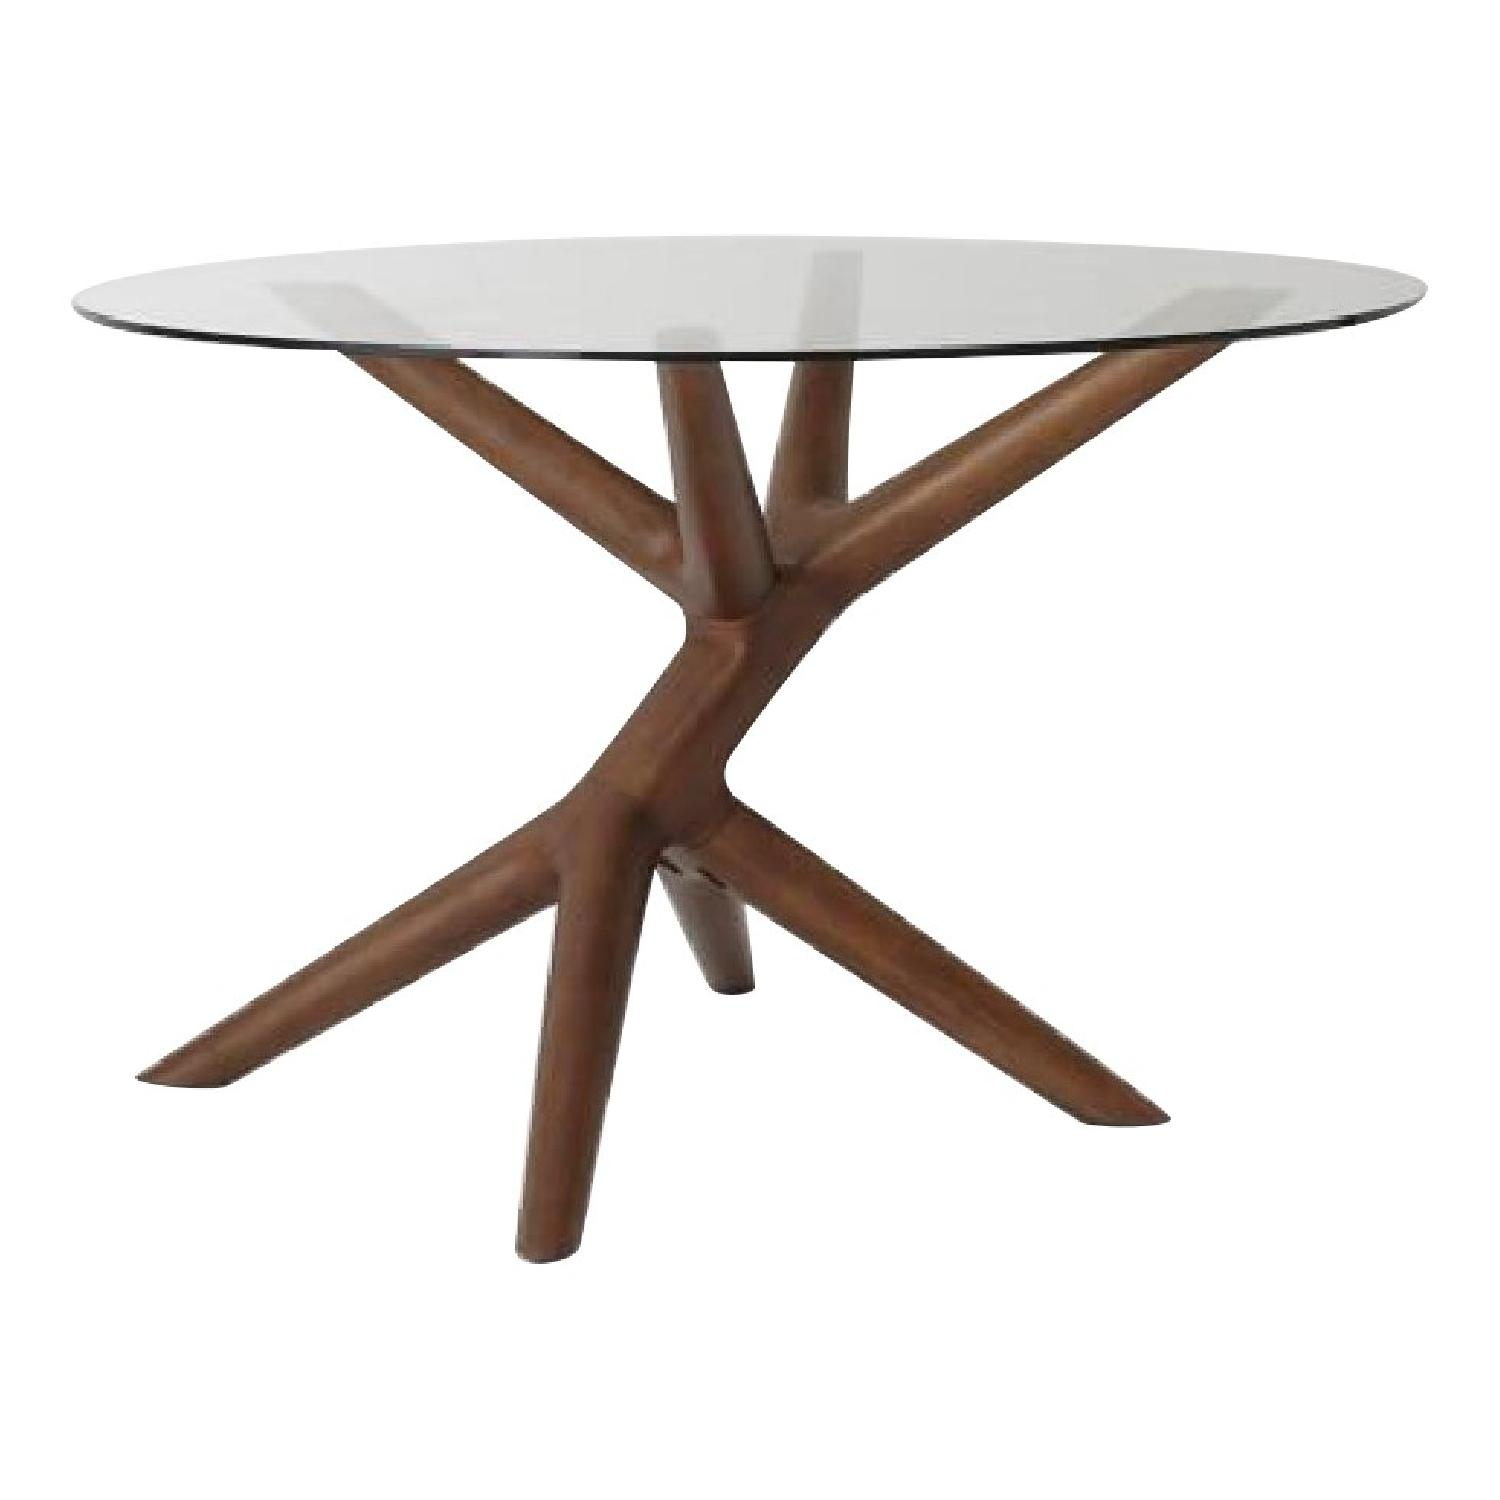 West Elm John Vogel Round Glass Top Dining Table